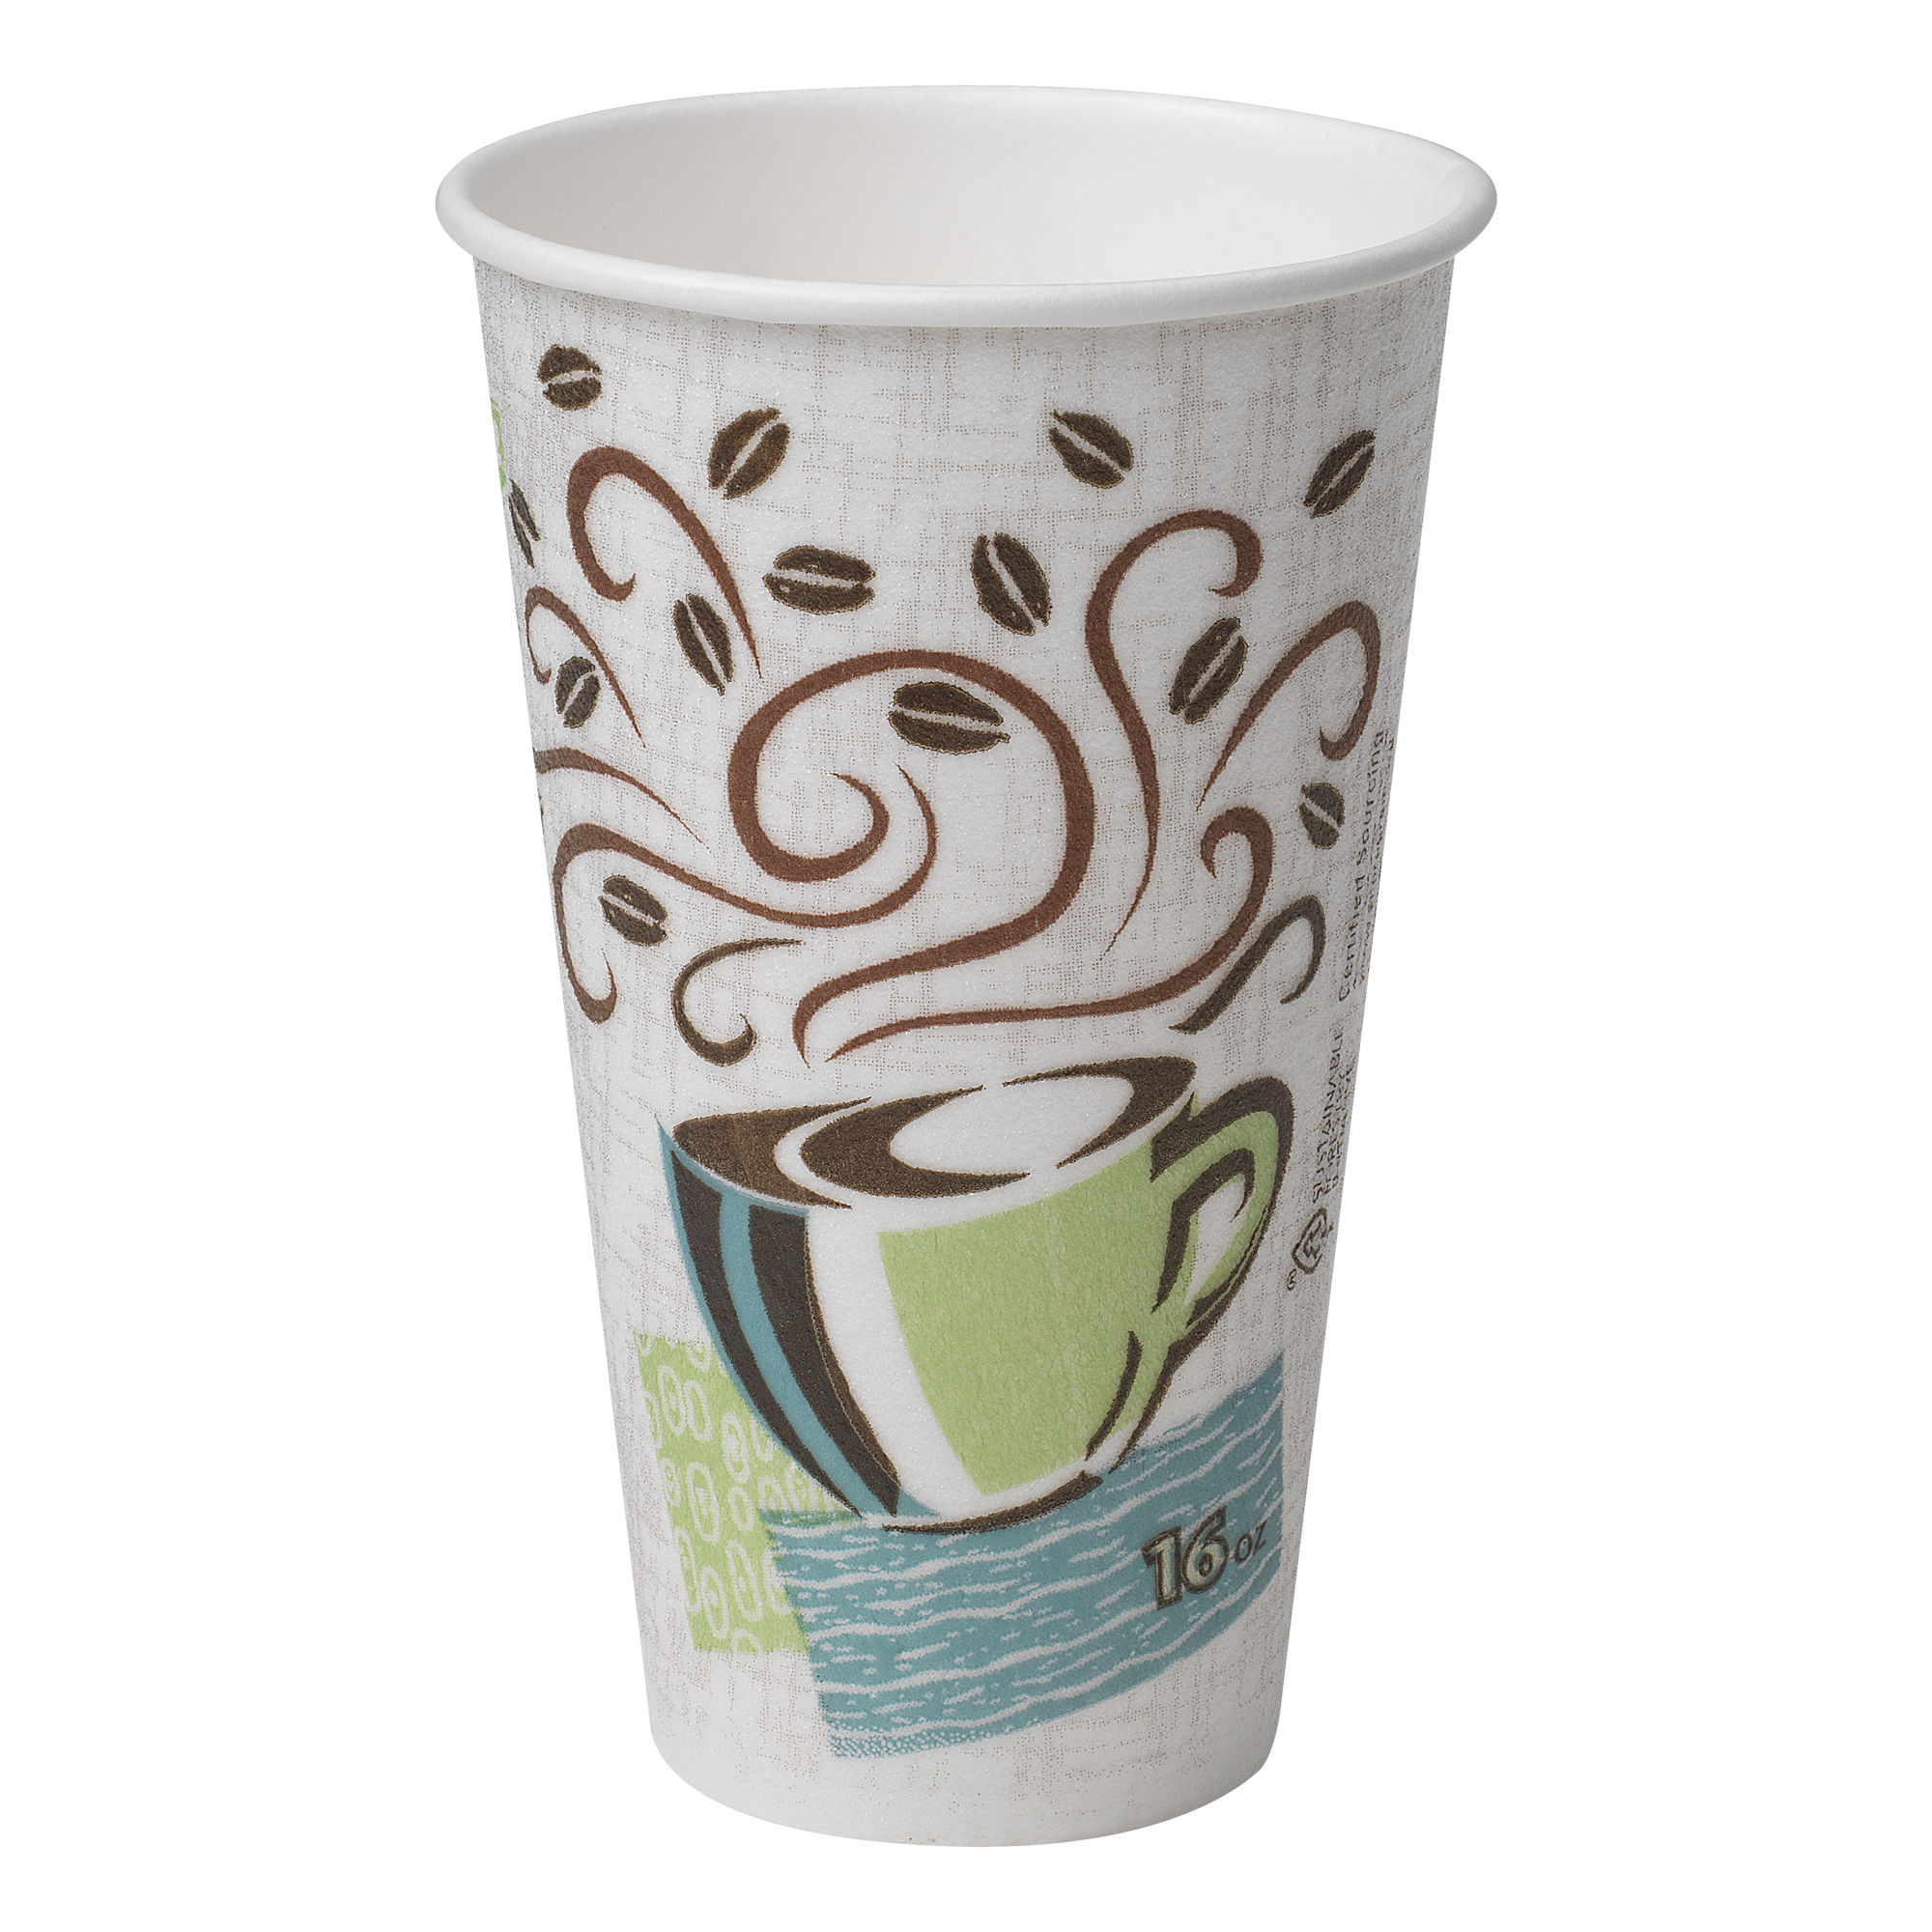 Dixie® PerfecTouch® (5356DX) Insulated 16 oz. Paper Hot Cup by Georgia-Pacific, Coffee Haze, 20 Sleeves of 25 Cups (500 Cups Total)